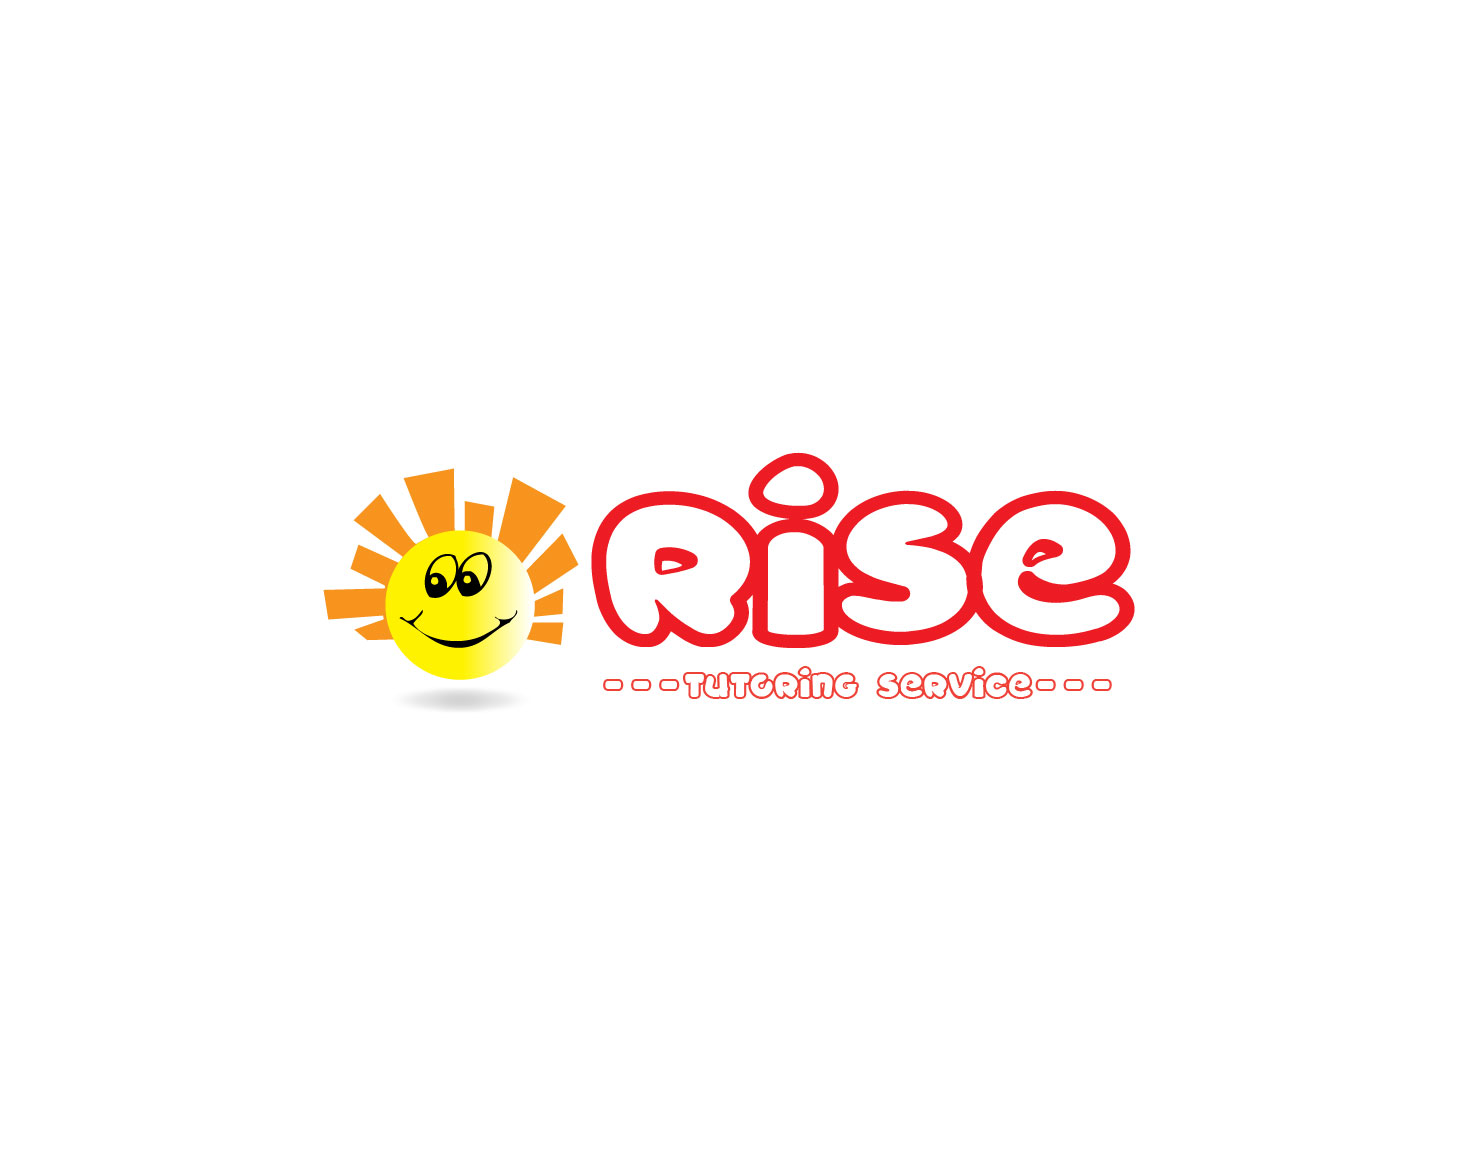 Logo Design by Rowel Samson - Entry No. 174 in the Logo Design Contest Imaginative Logo Design for Rise Tutoring Service.